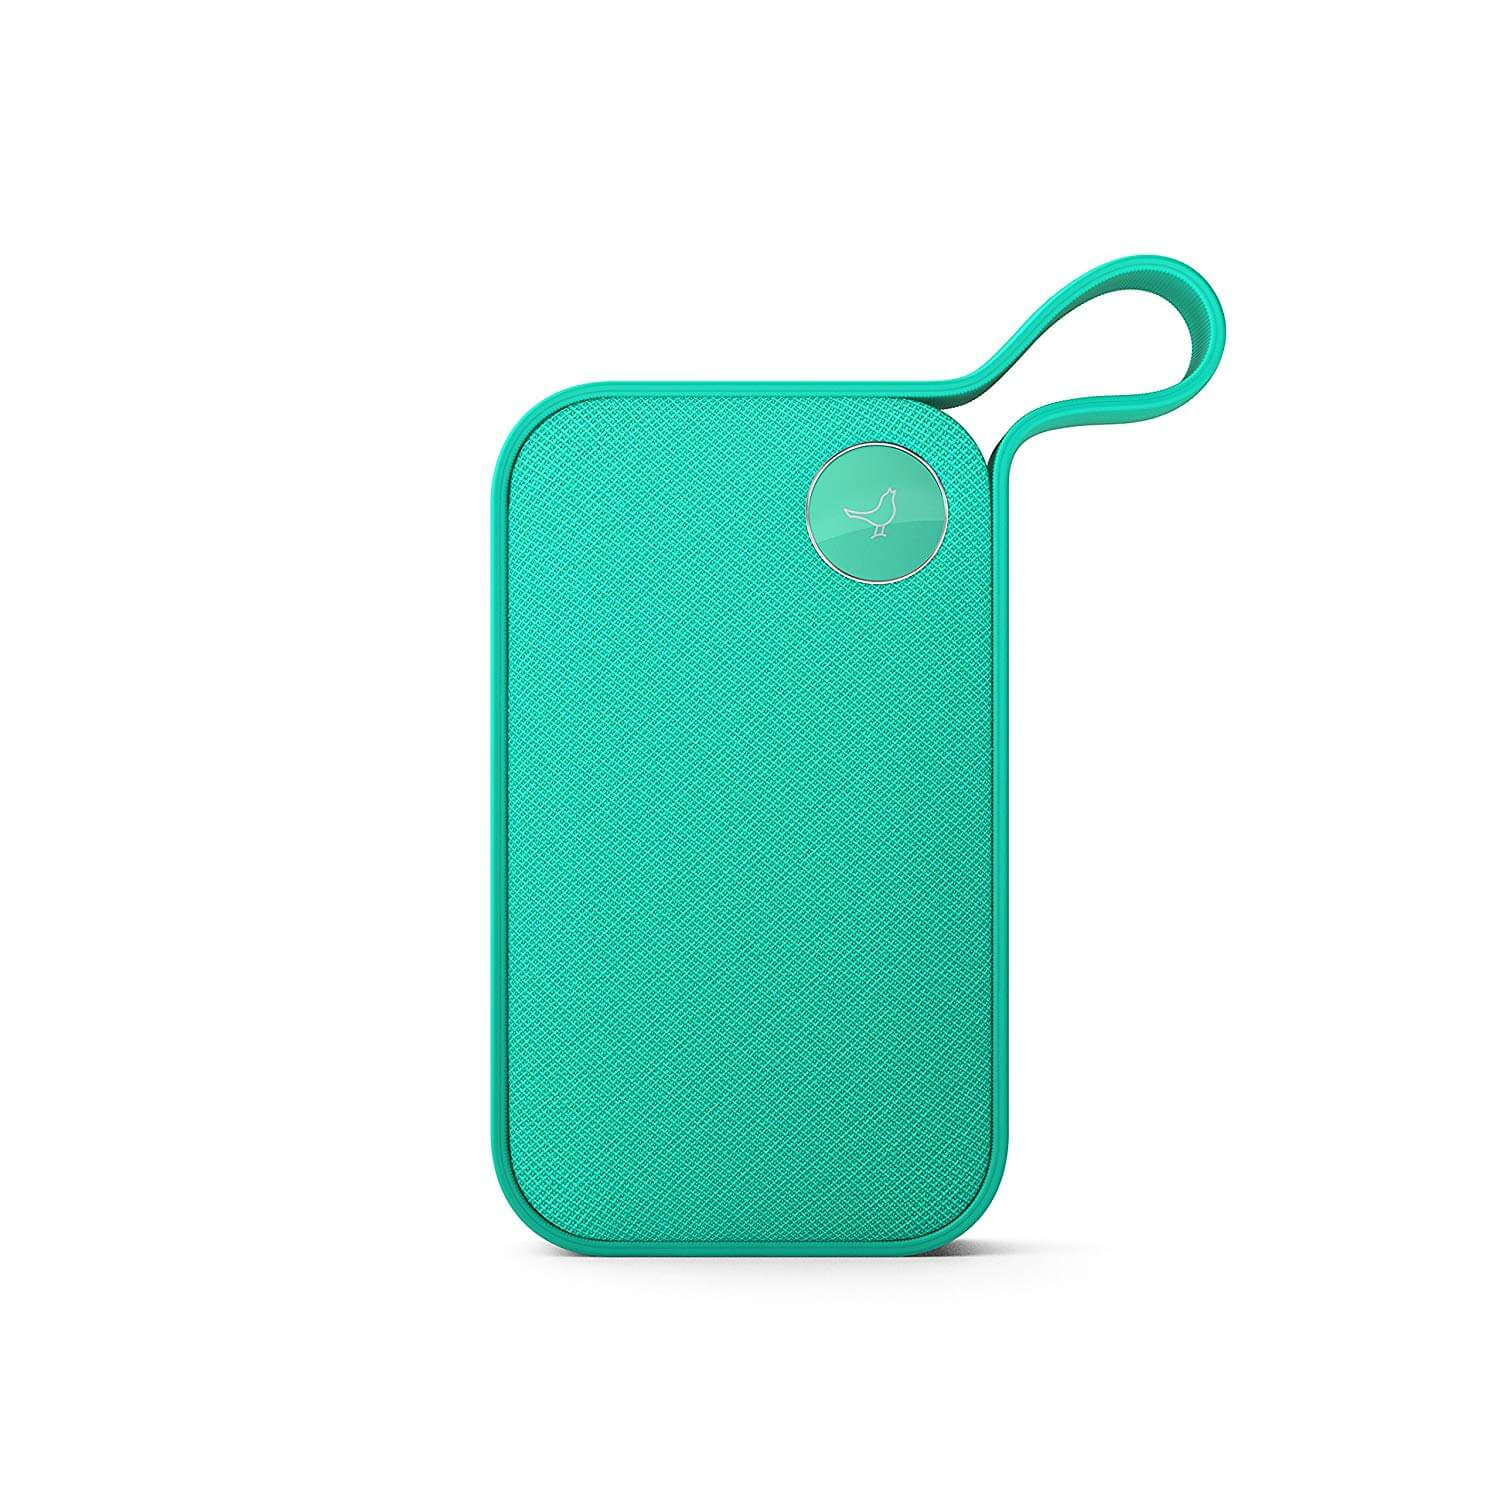 Libratone ONE Style Bluetooth Speaker (360° Sound, Touch Operation, IPX4 Splashproof, 12h Rechargeable Battery) -  Caribbean Green